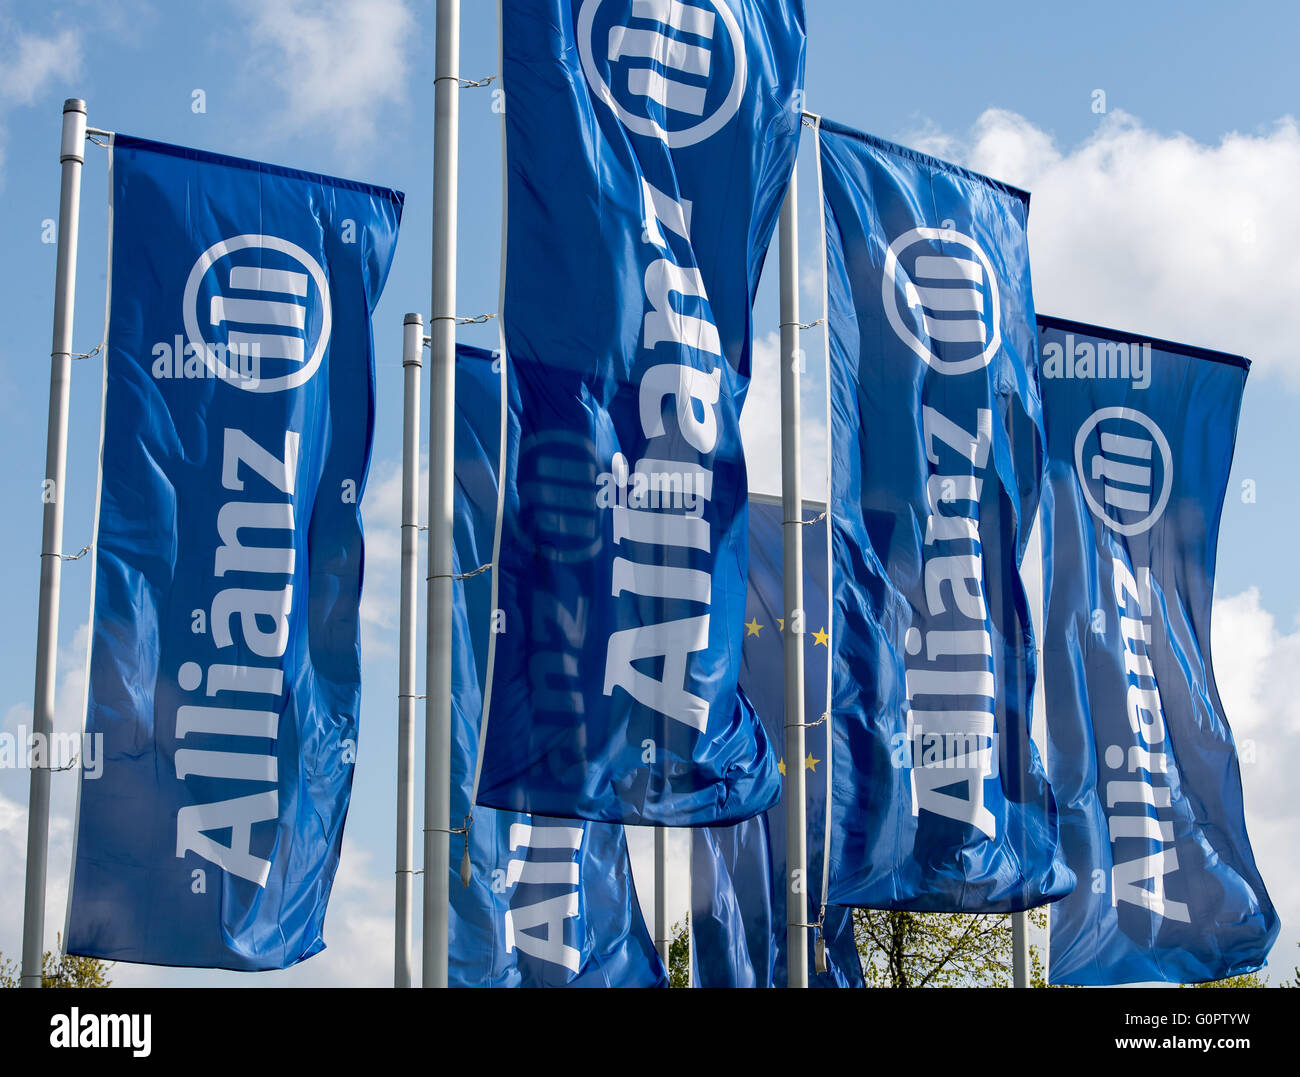 Munich, Germany. 04th Apr, 2016. Blue flags written with 'Allianz' wave ahead of the Allianz general assembly in Munich, Germany, 04 April 2016. Photo: PETER KNEFFEL/dpa/Alamy Live News Stock Photo